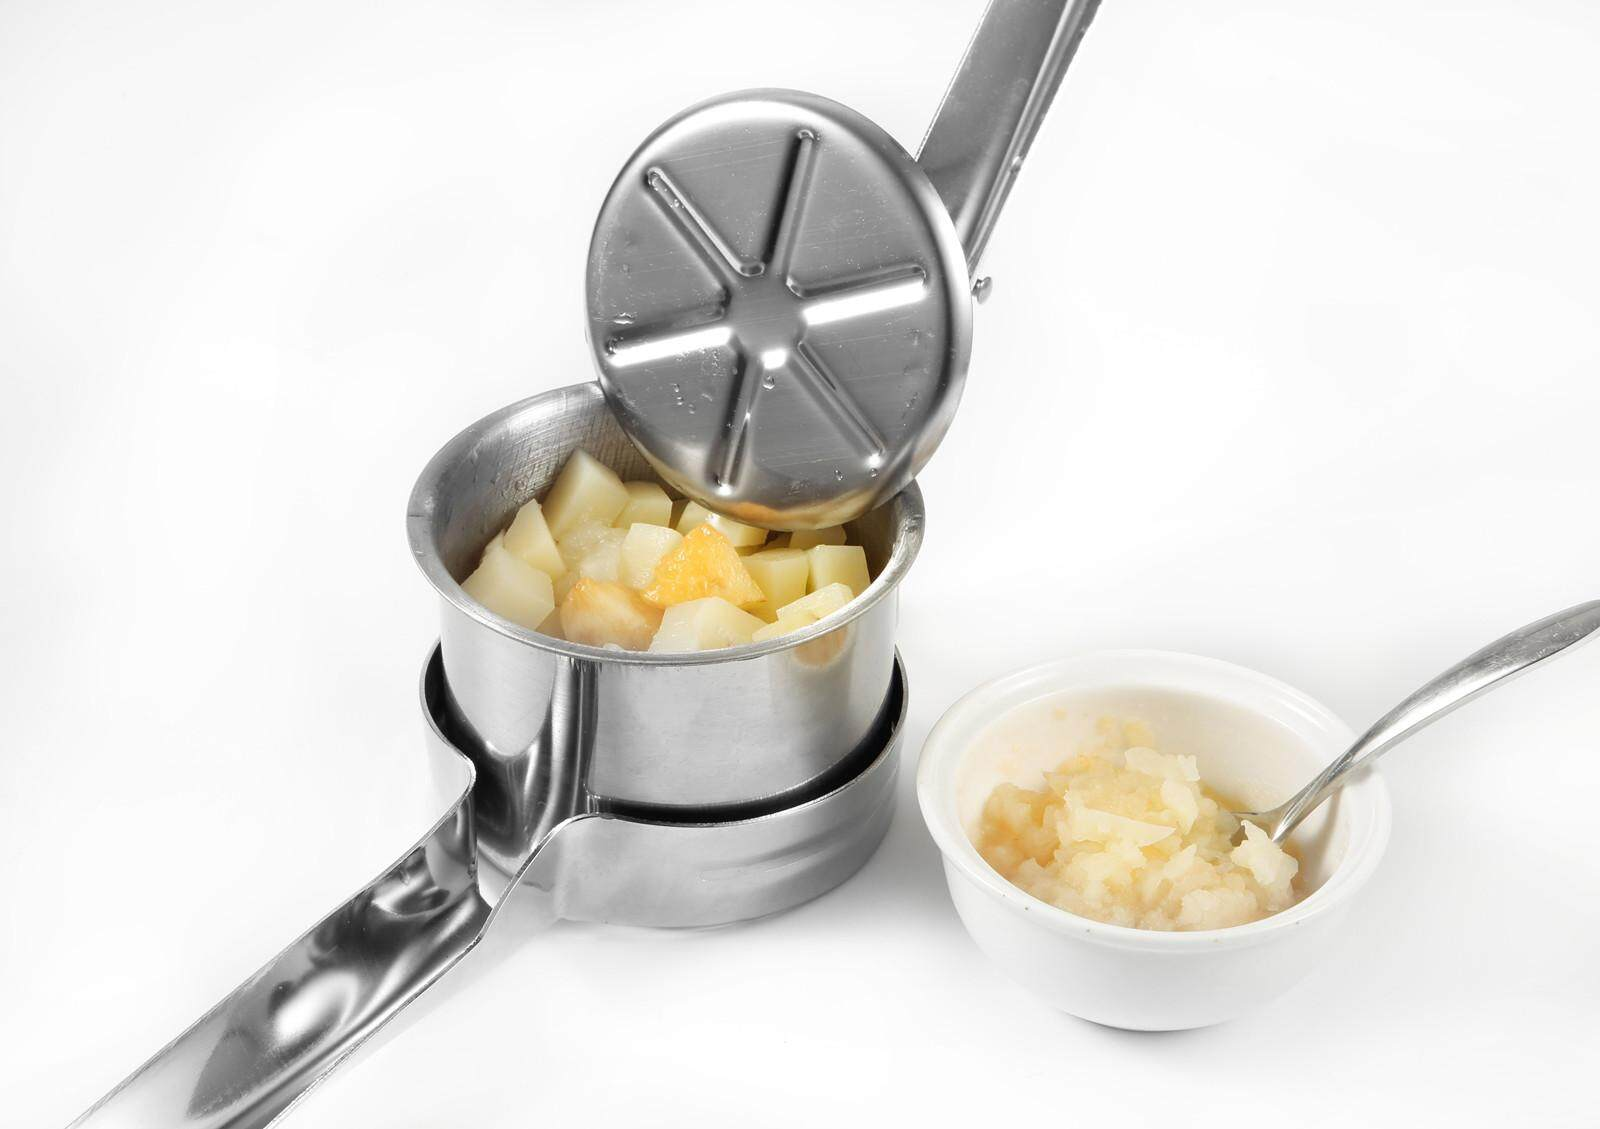 Priority Chef Potato Ricer and Masher 430Stainless Steel Fruit Veget Press Maker